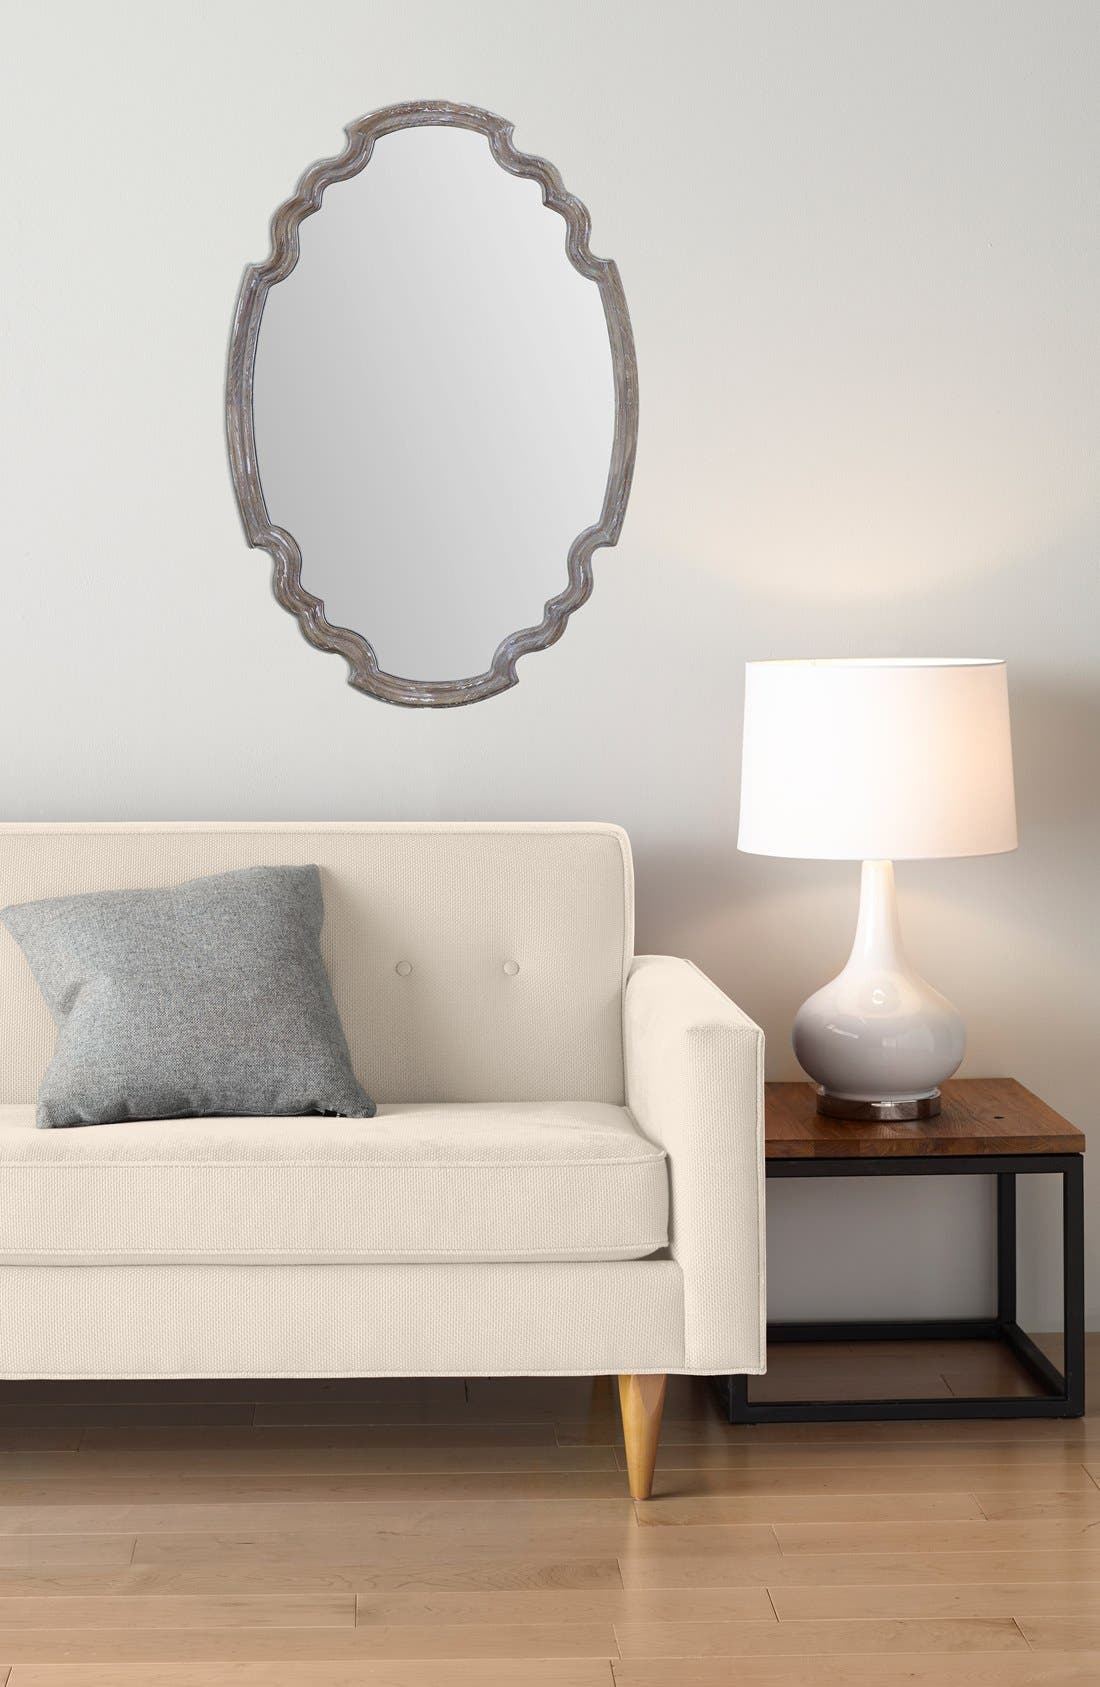 'Ludovica' Aged Finish Oval Wall Mirror,                             Alternate thumbnail 2, color,                             020